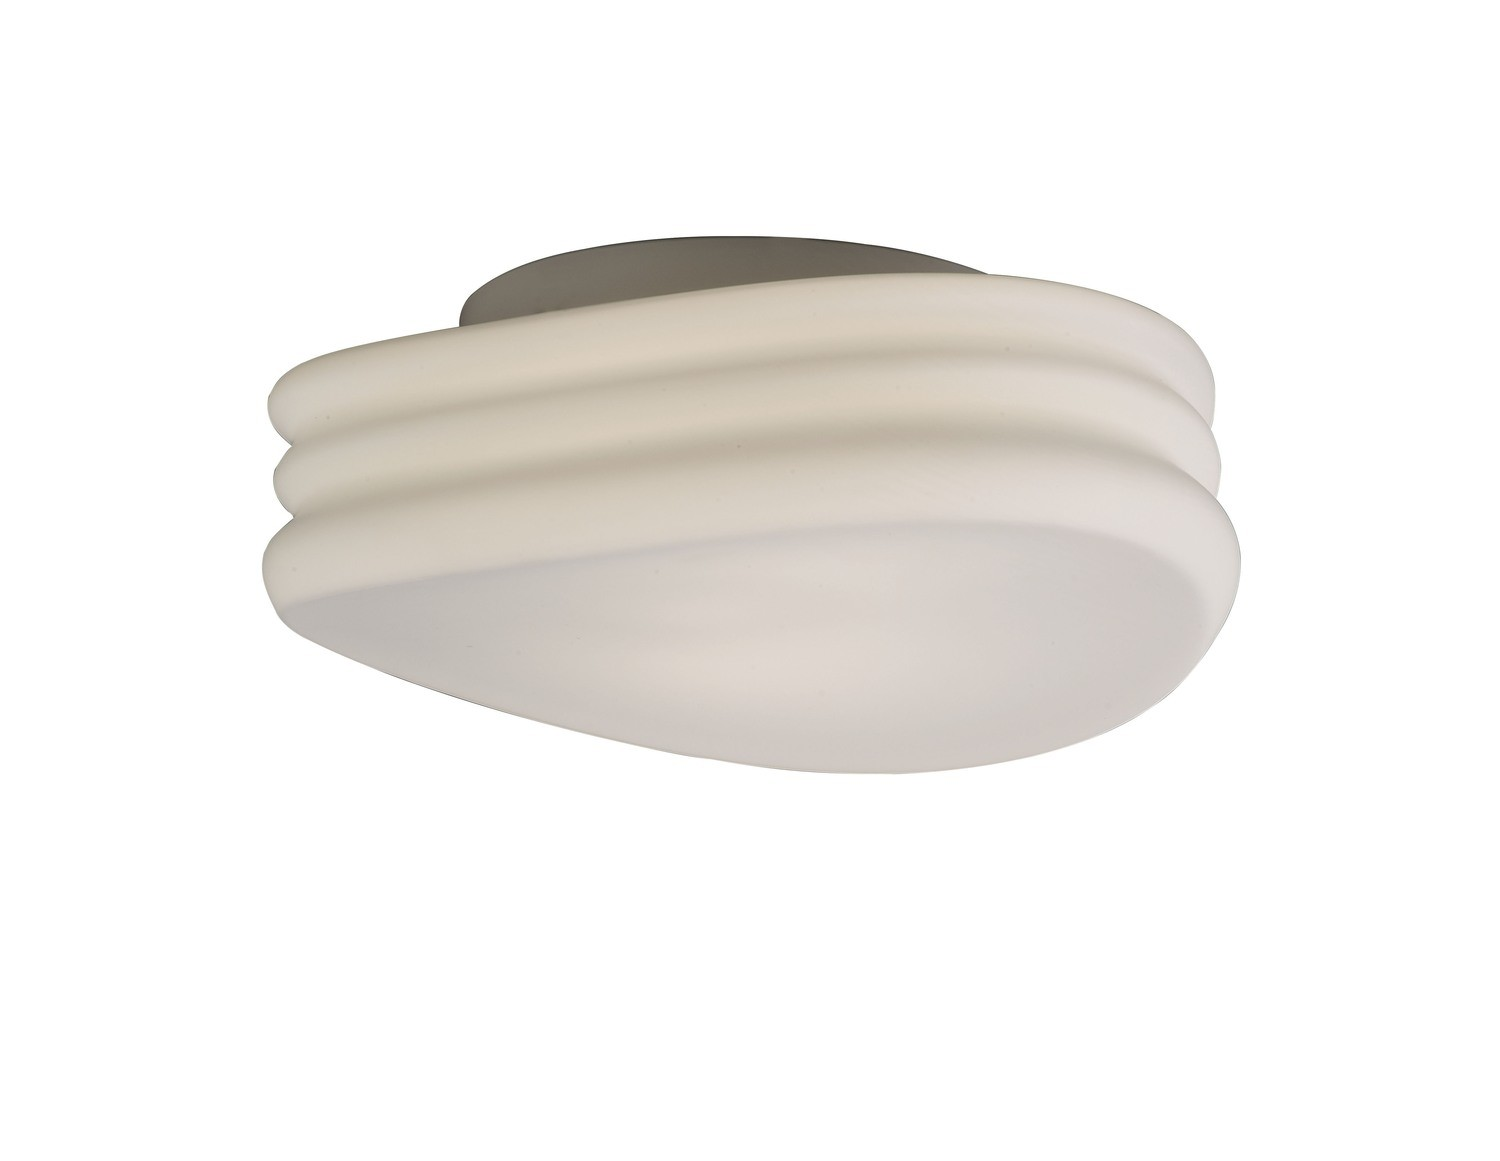 Mediterraneo Ceiling/Wall 2 Light E27 Medium, Frosted White Glass